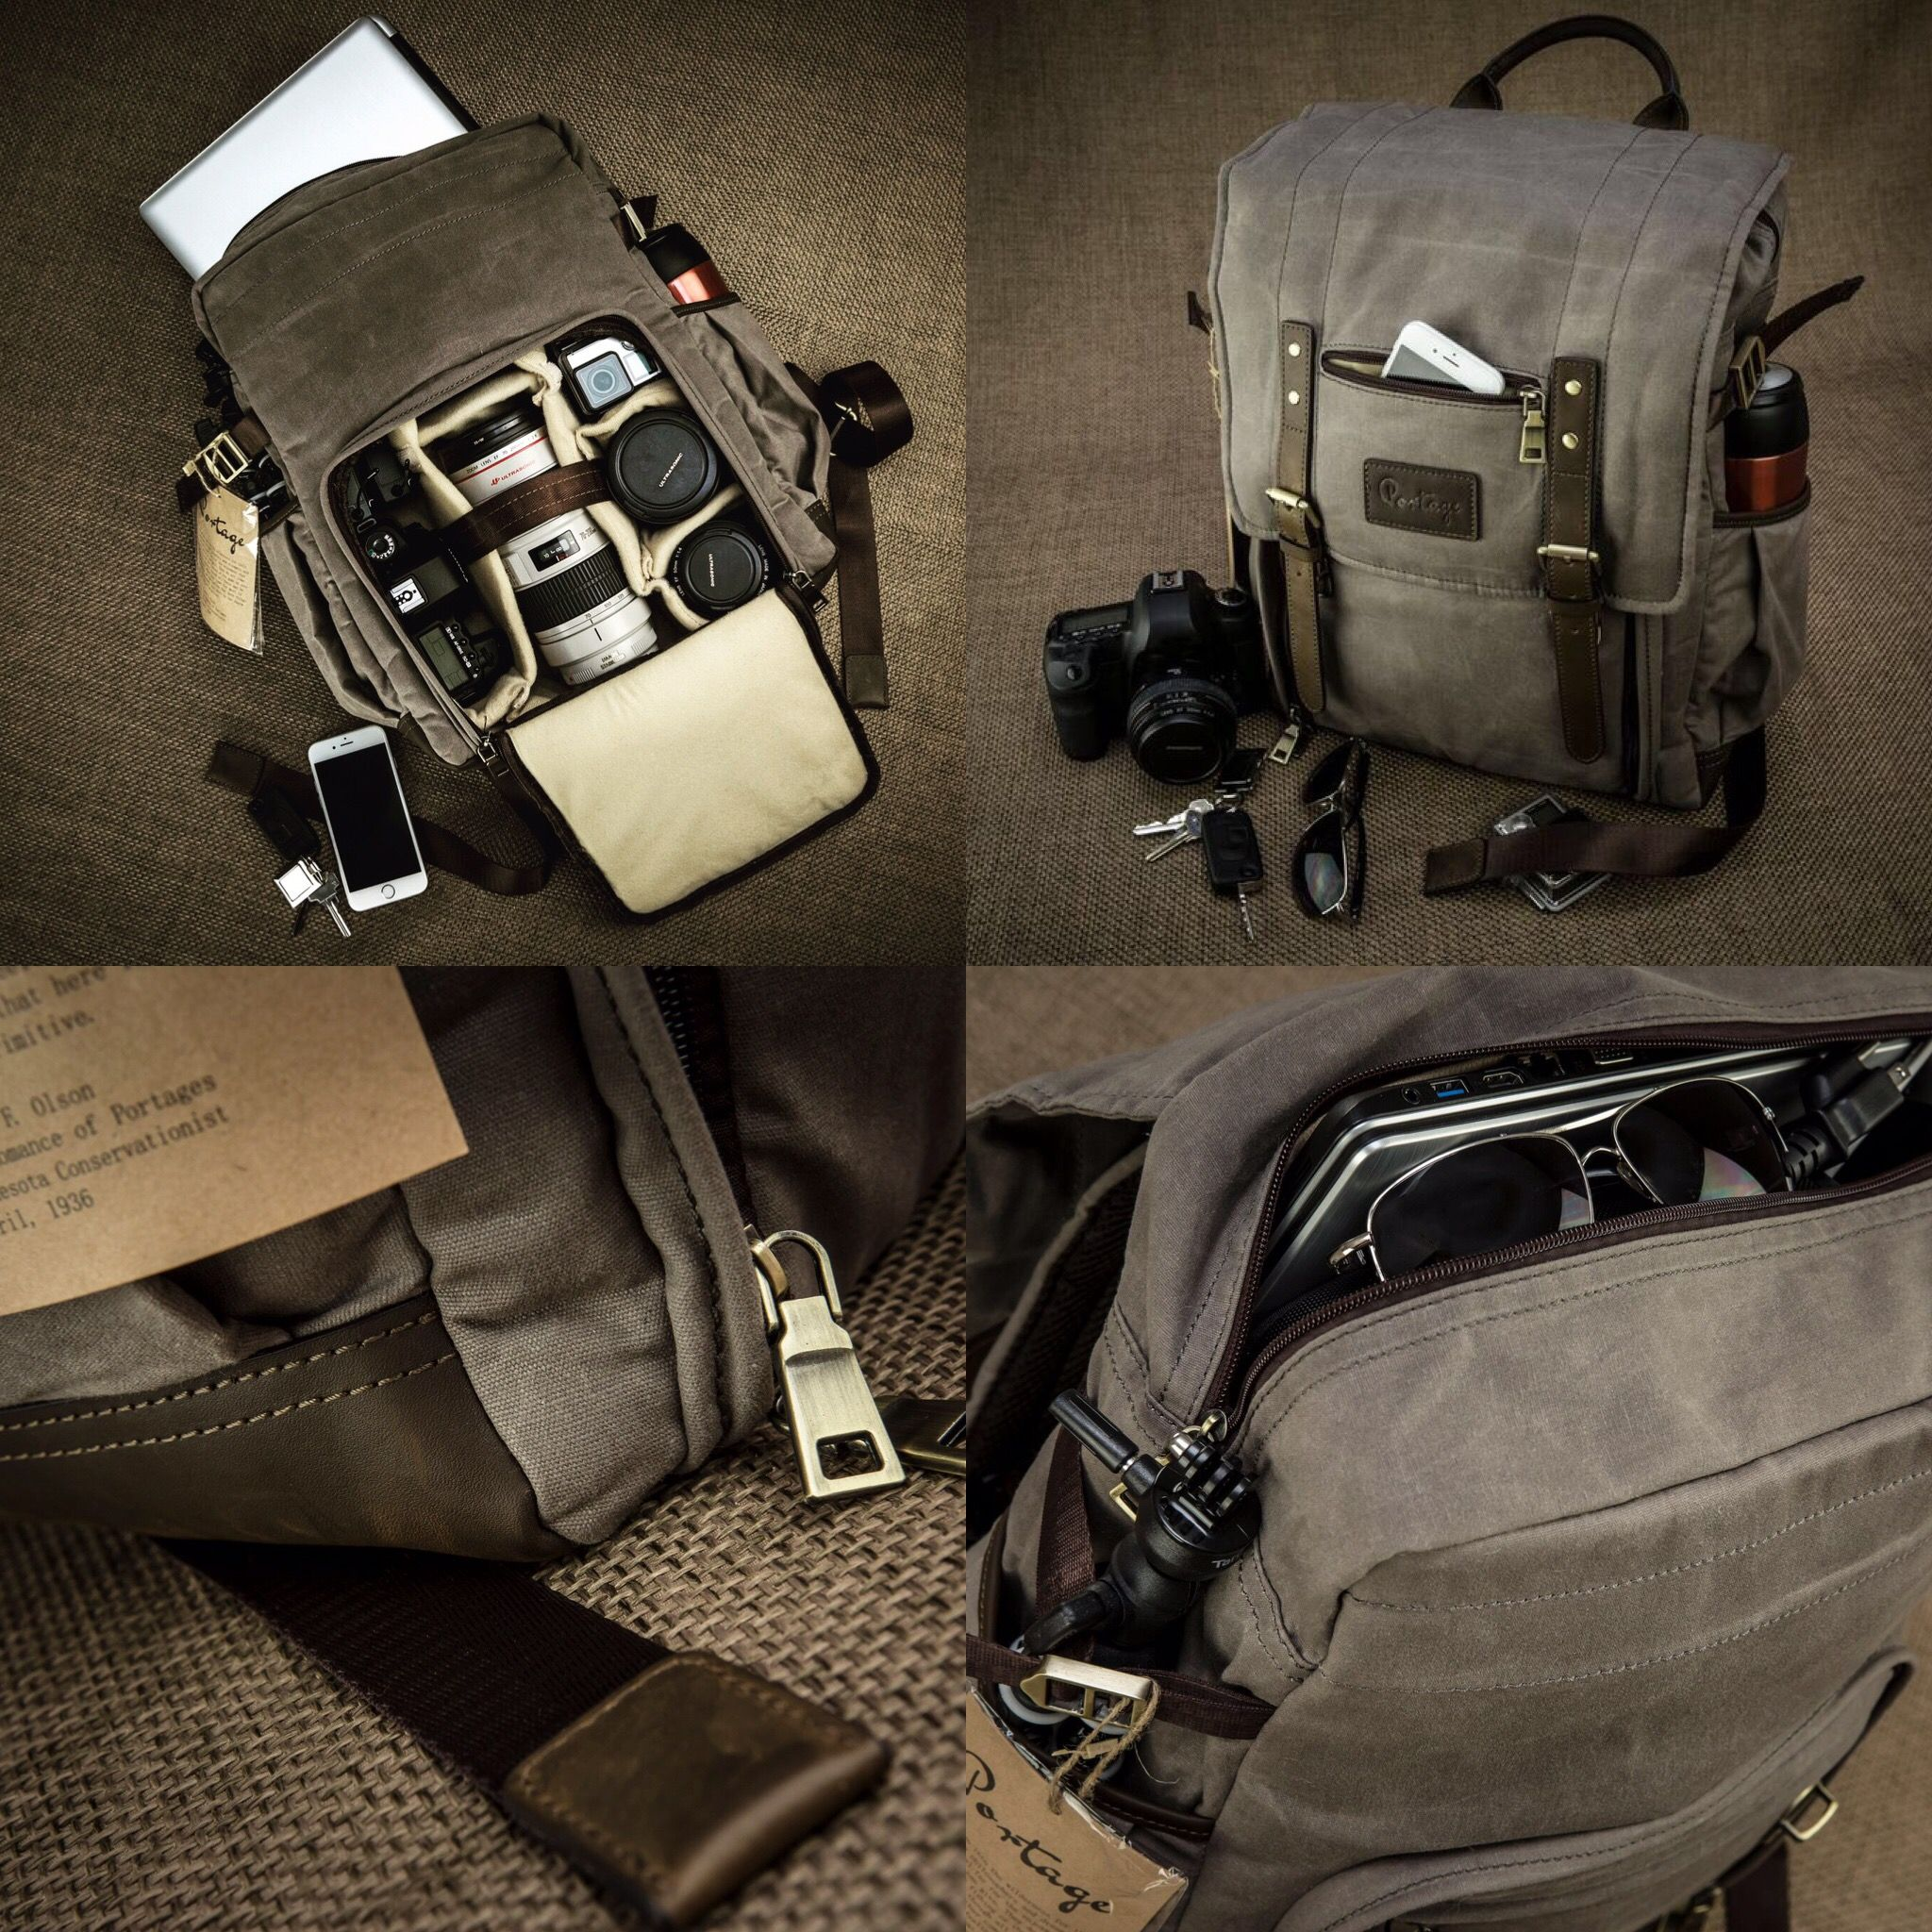 d4391cc6219ba Generation 3 Kenora Camera Backpack, now with SIDE ACCESS! Carry plenty of  camera gear, laptop, and personal items in style!